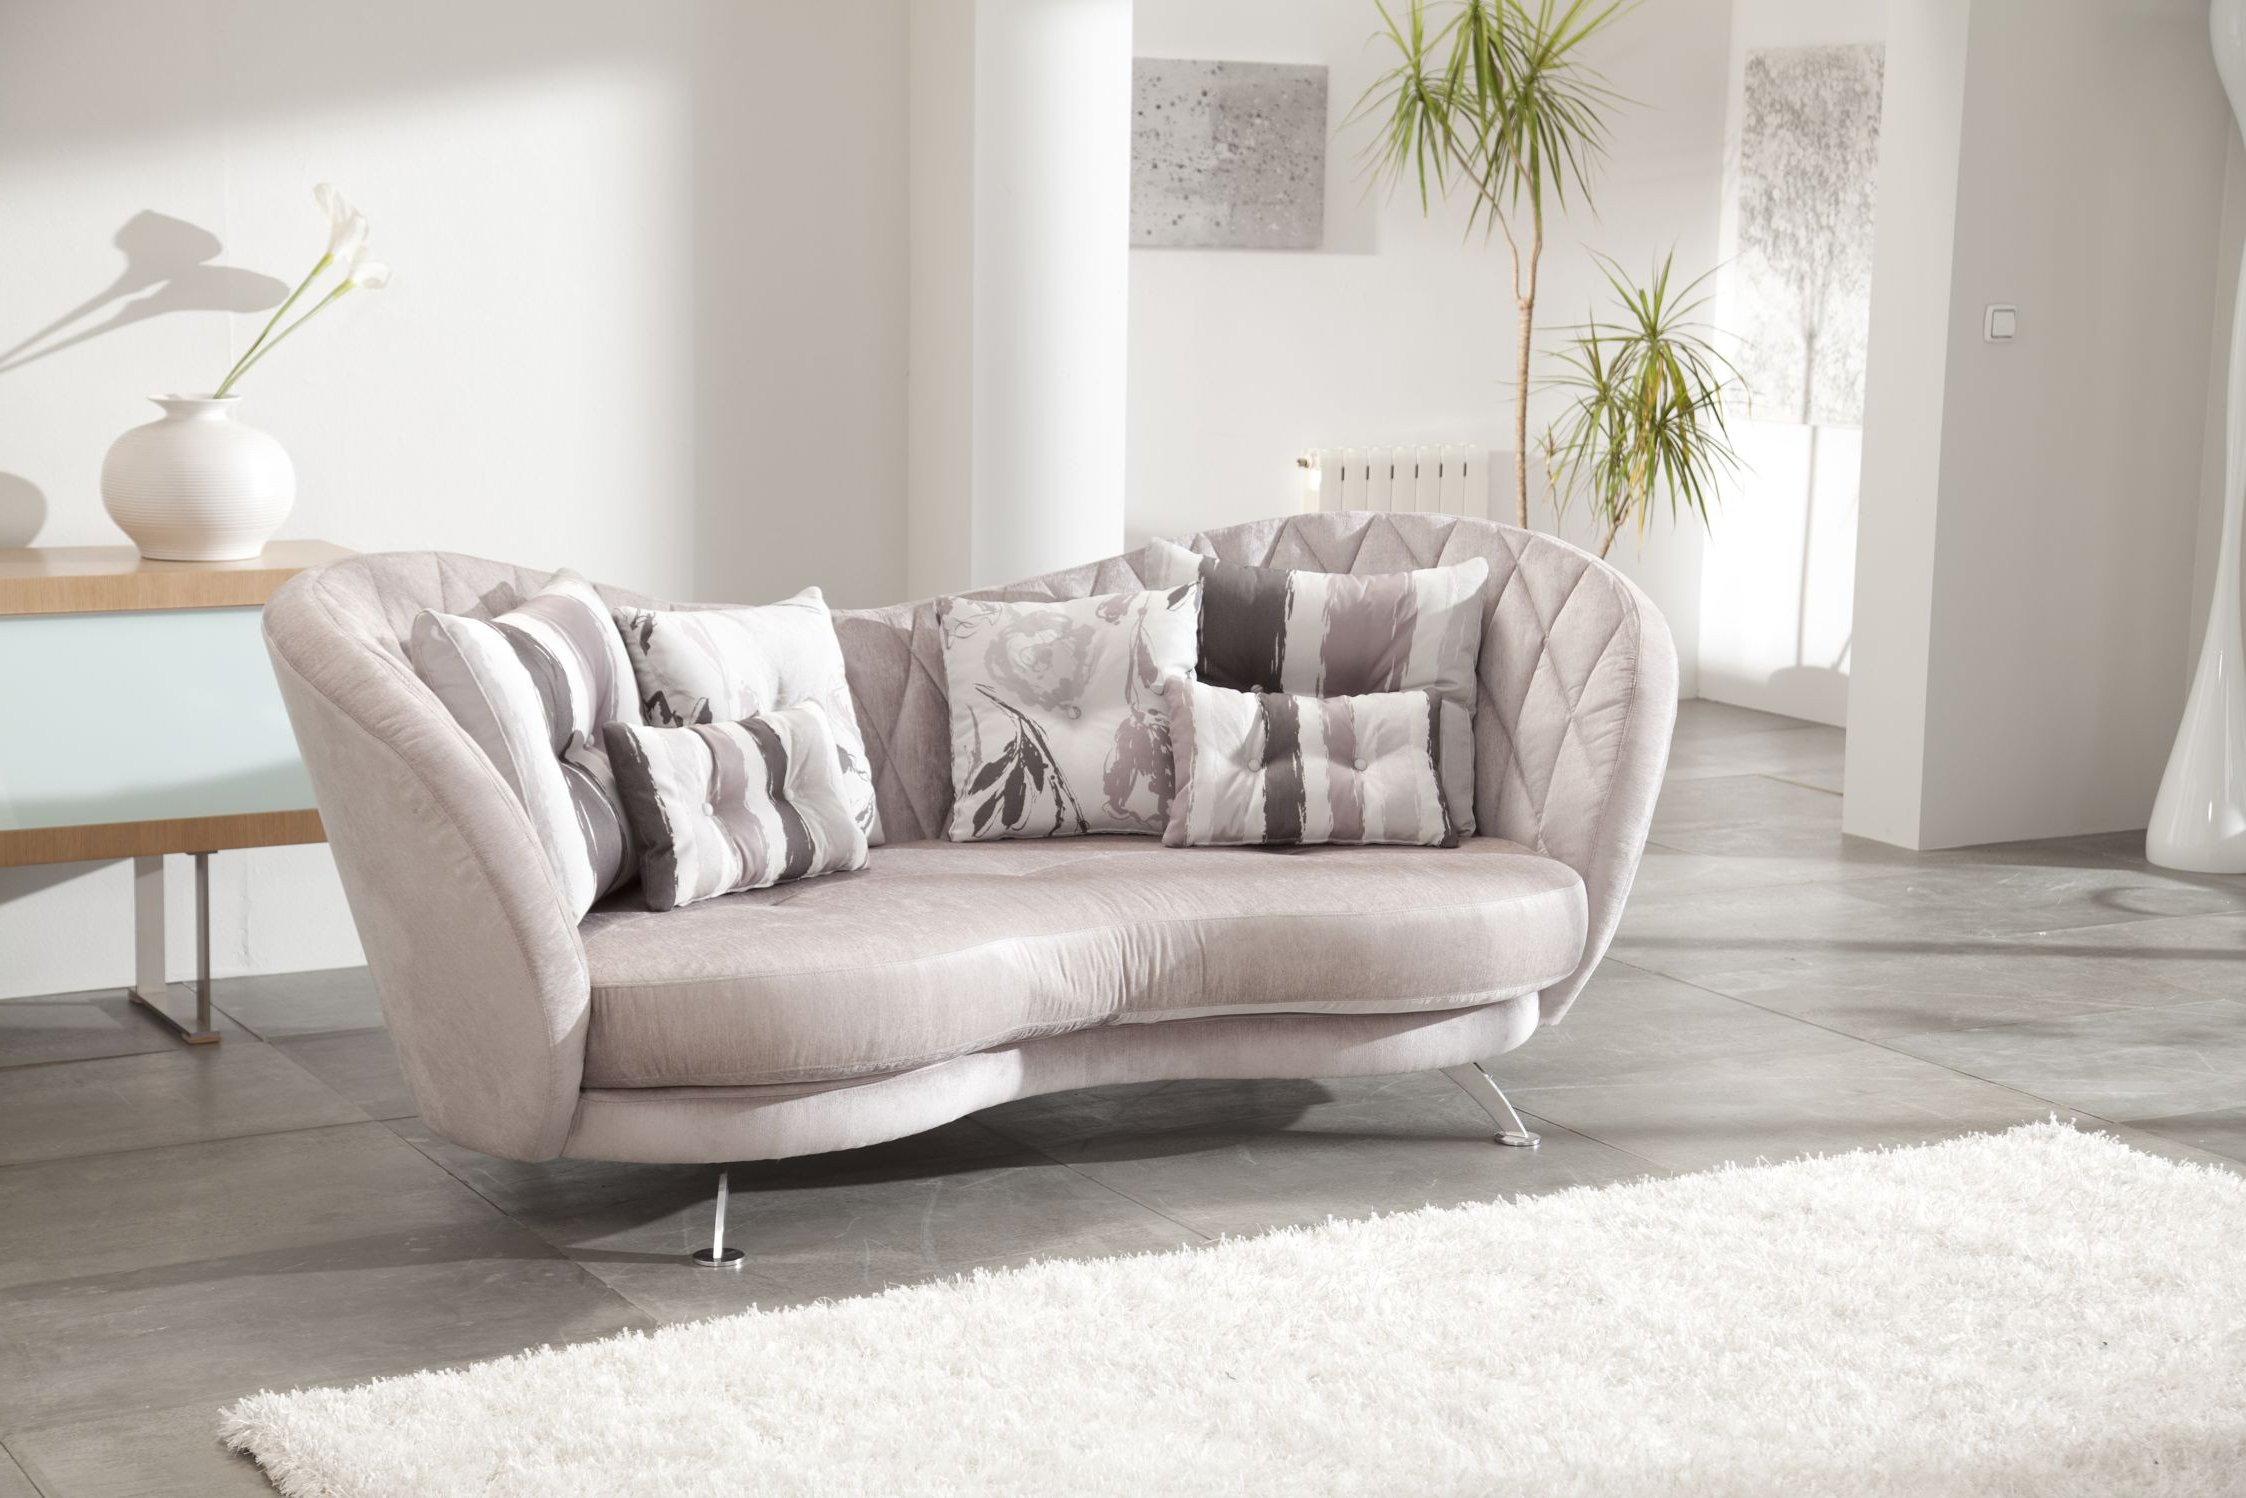 Fama Sofas Pertaining To Most Current Josephine Sofa Chairs (View 3 of 20)